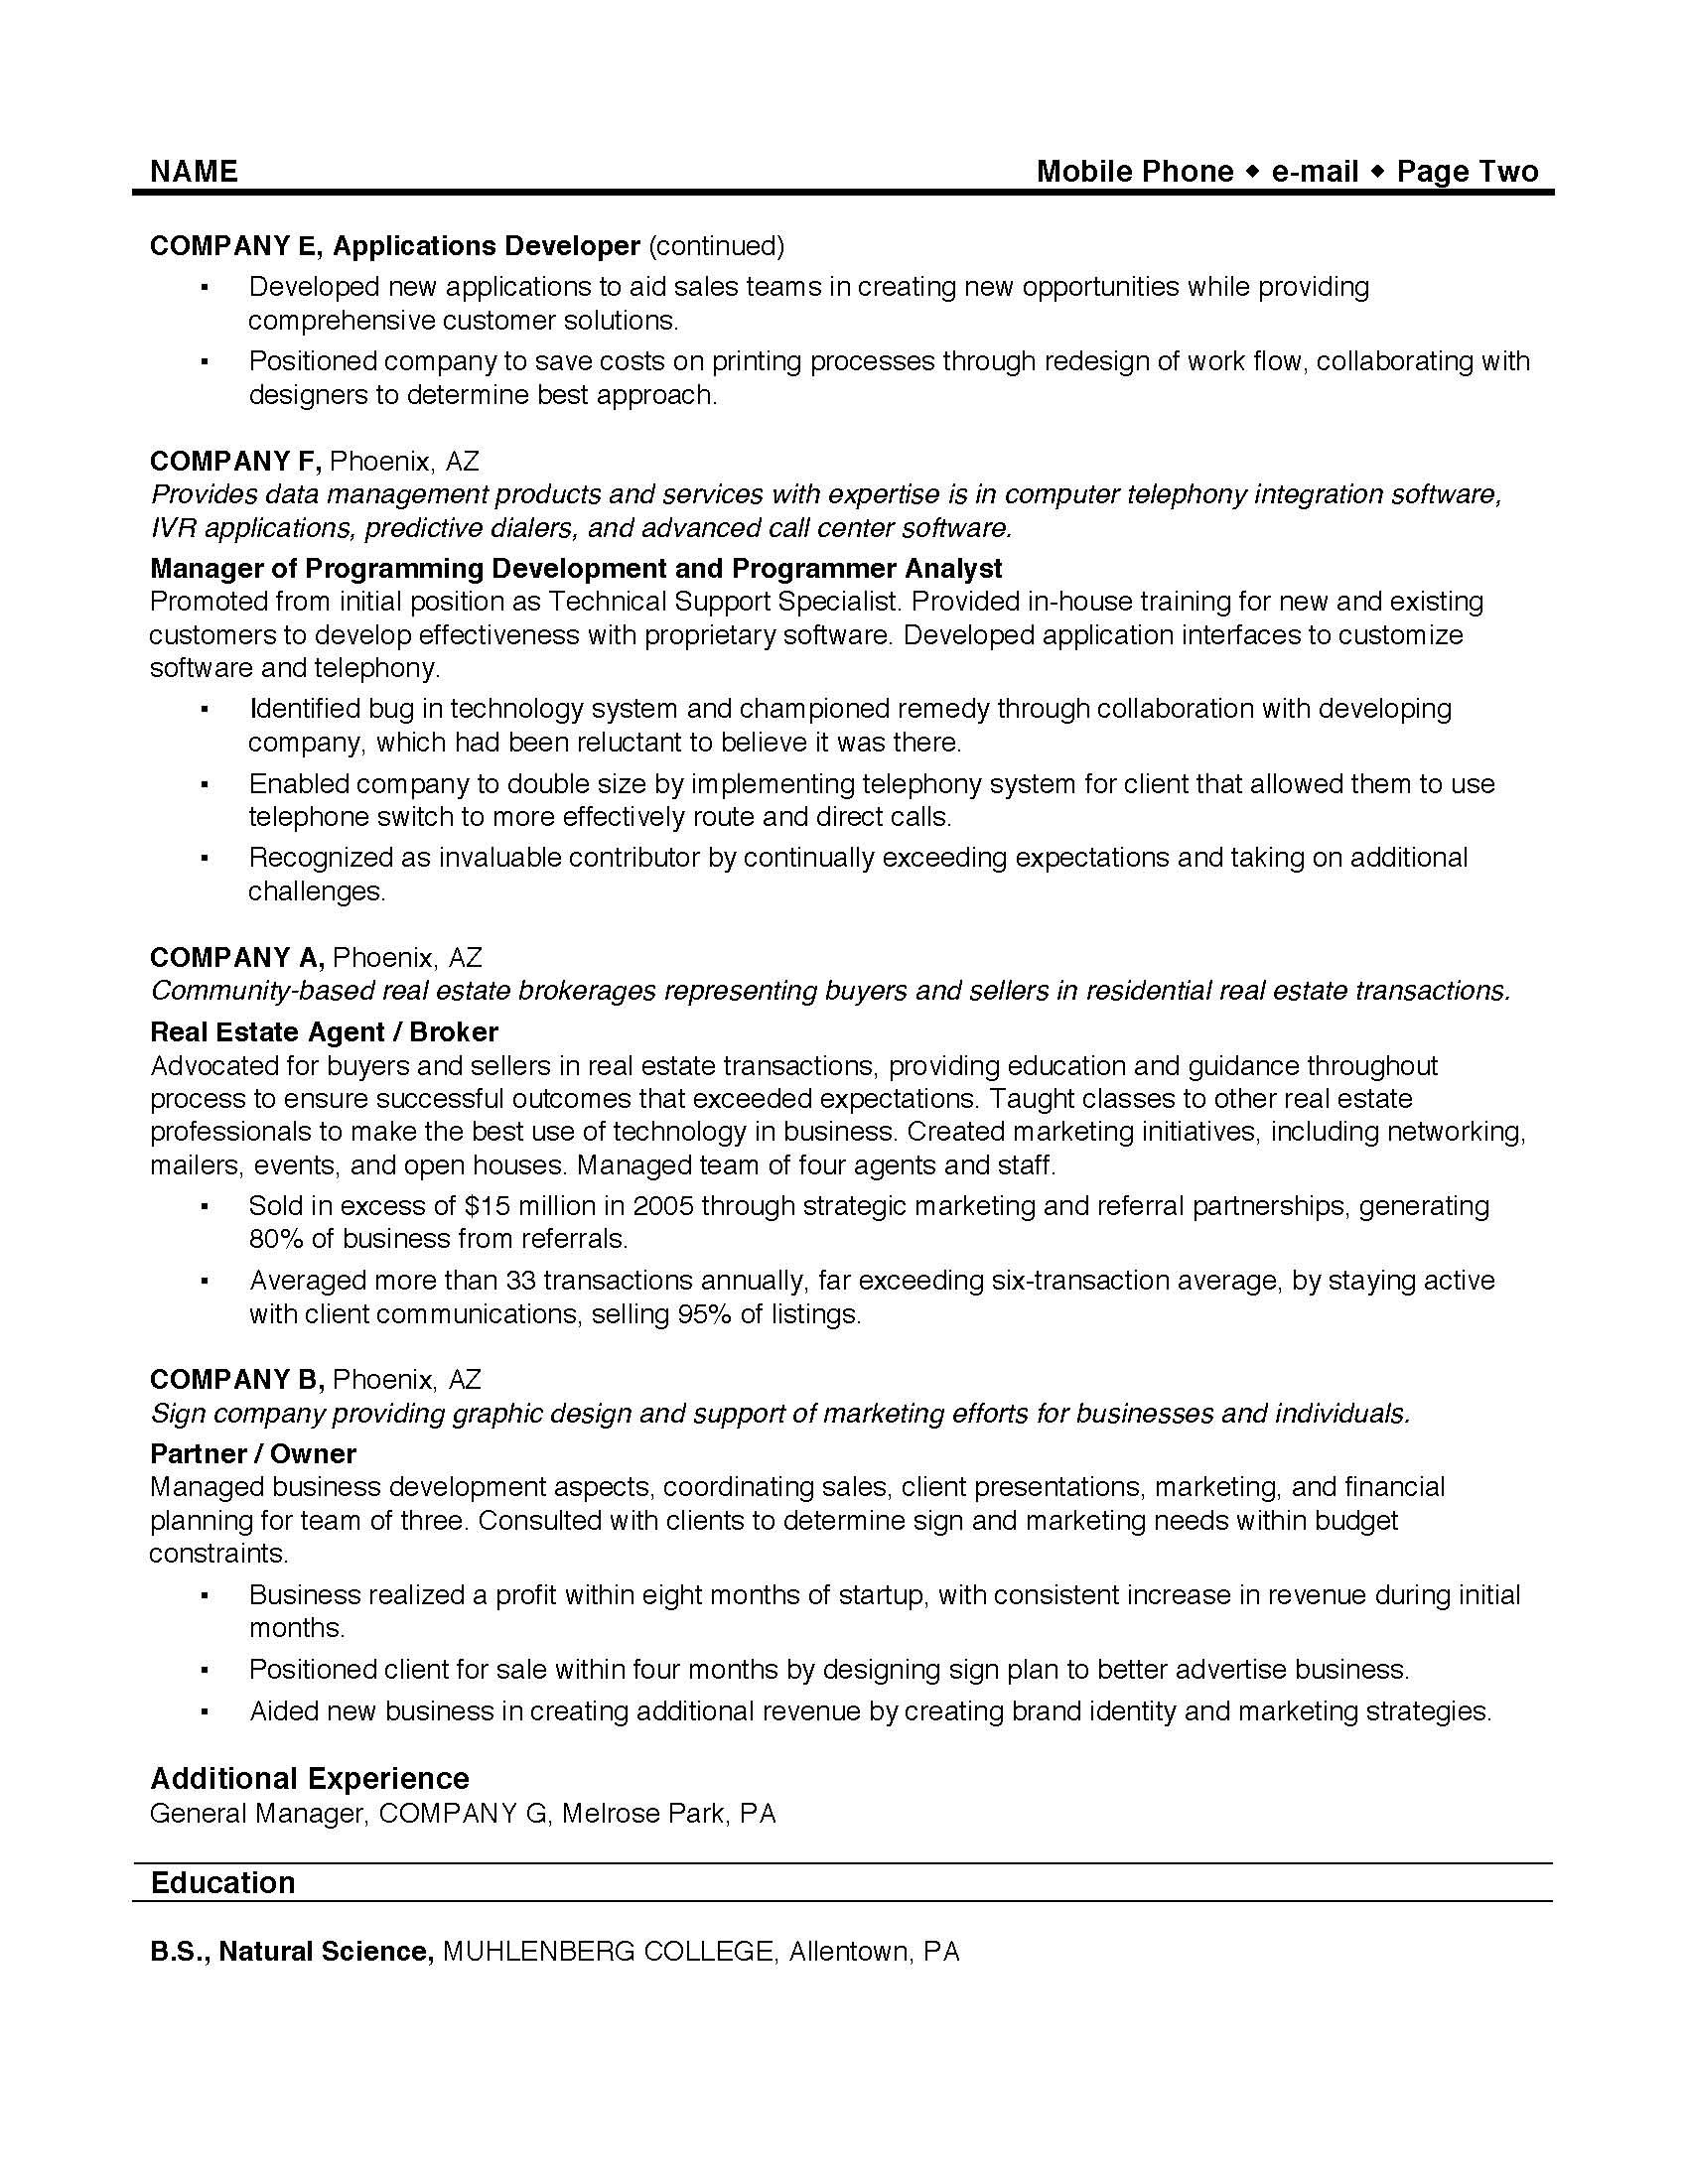 Resumes For Students Pics Photos Sample College Student Resume Examples Samples Resumes